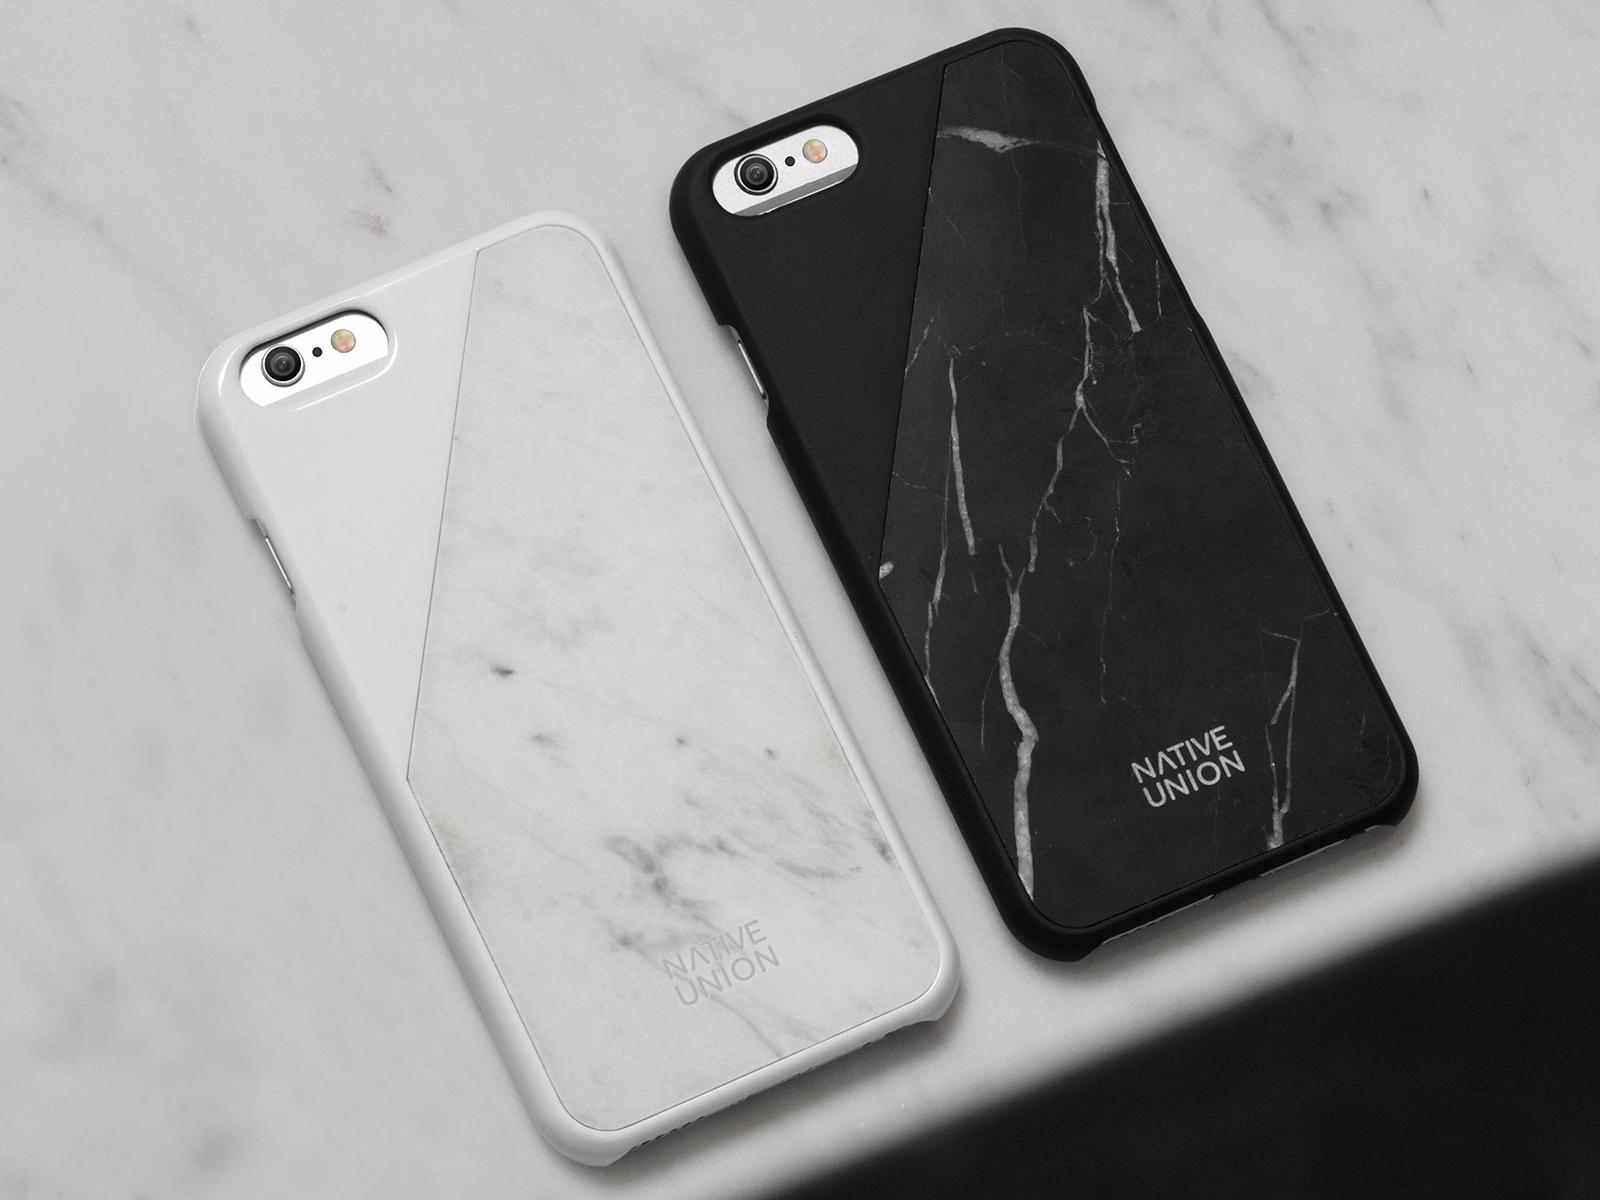 His And Hers Iphone Wallpapers